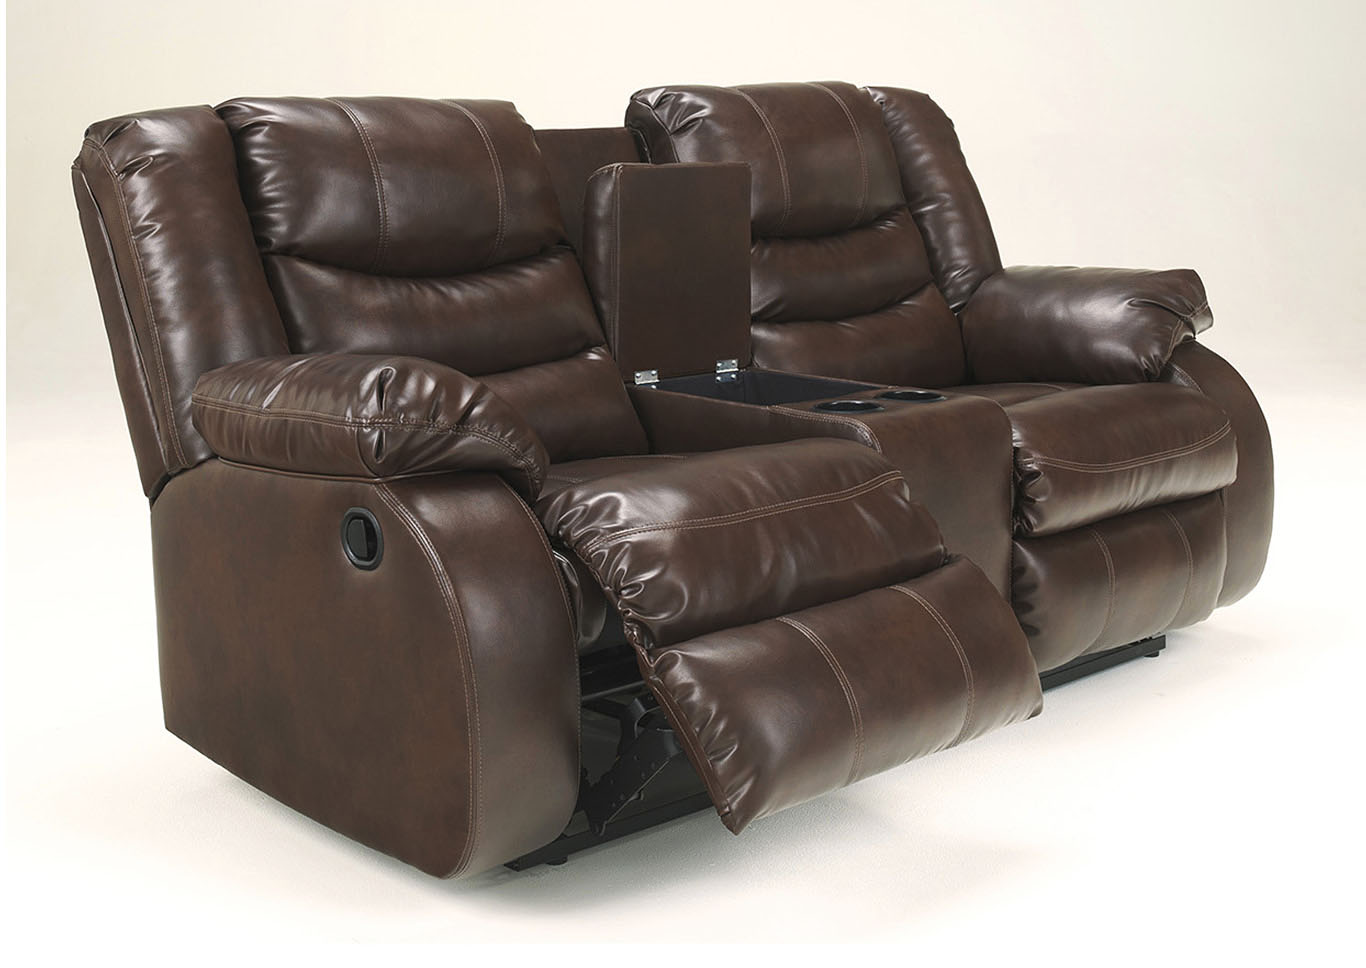 Linebacker DuraBlend Espresso Double Reclining Loveseat,Signature Design By Ashley